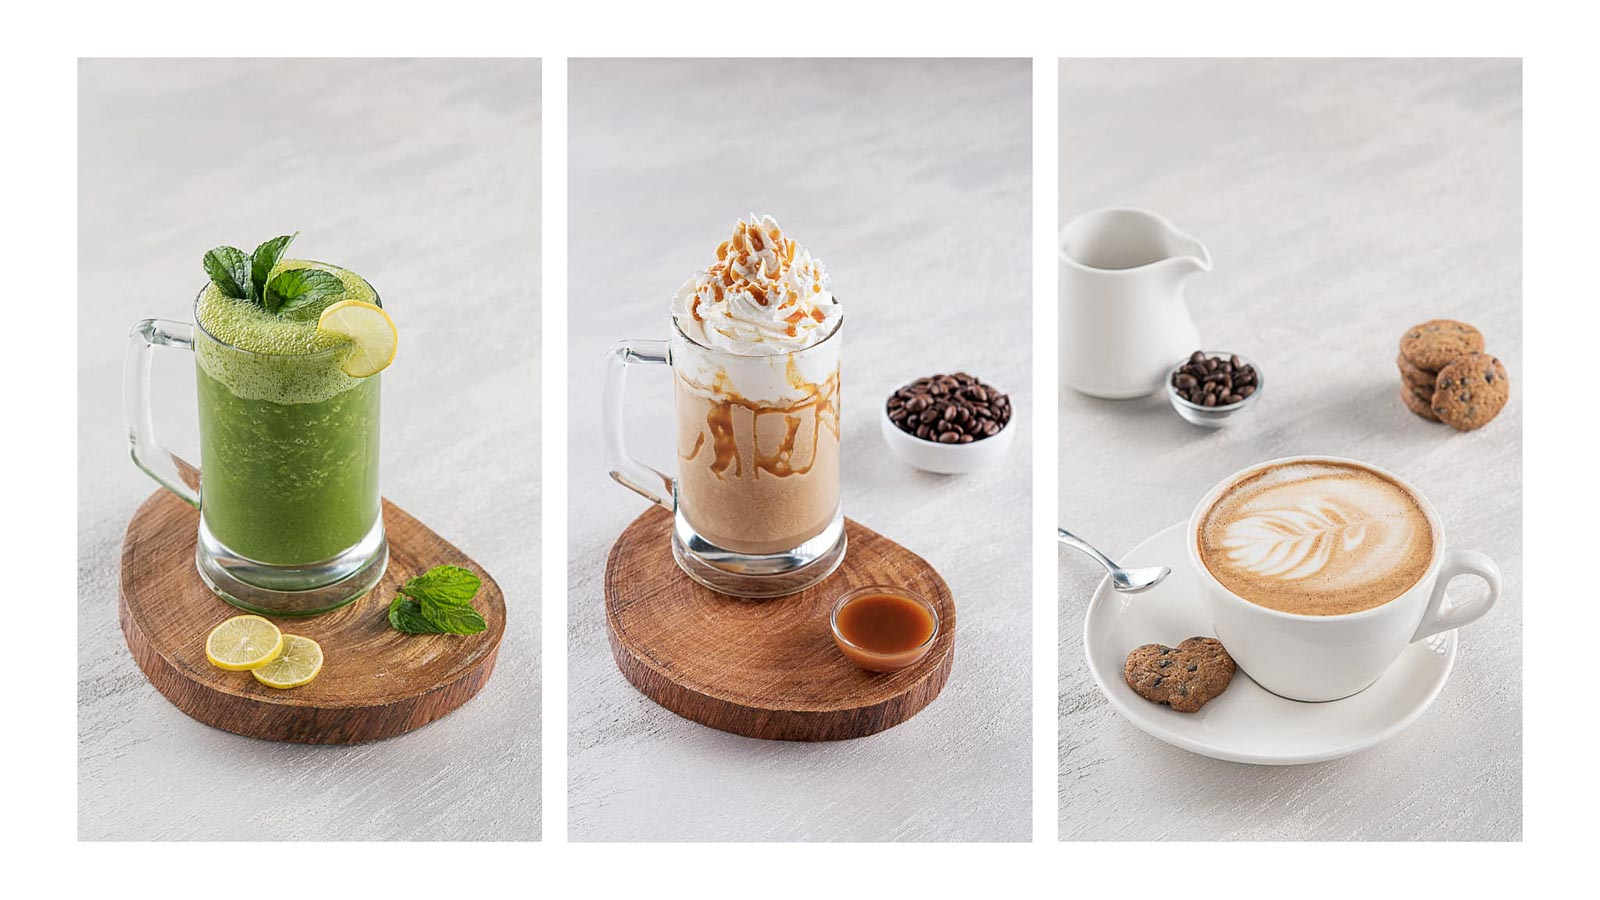 ace-food-photography (36)